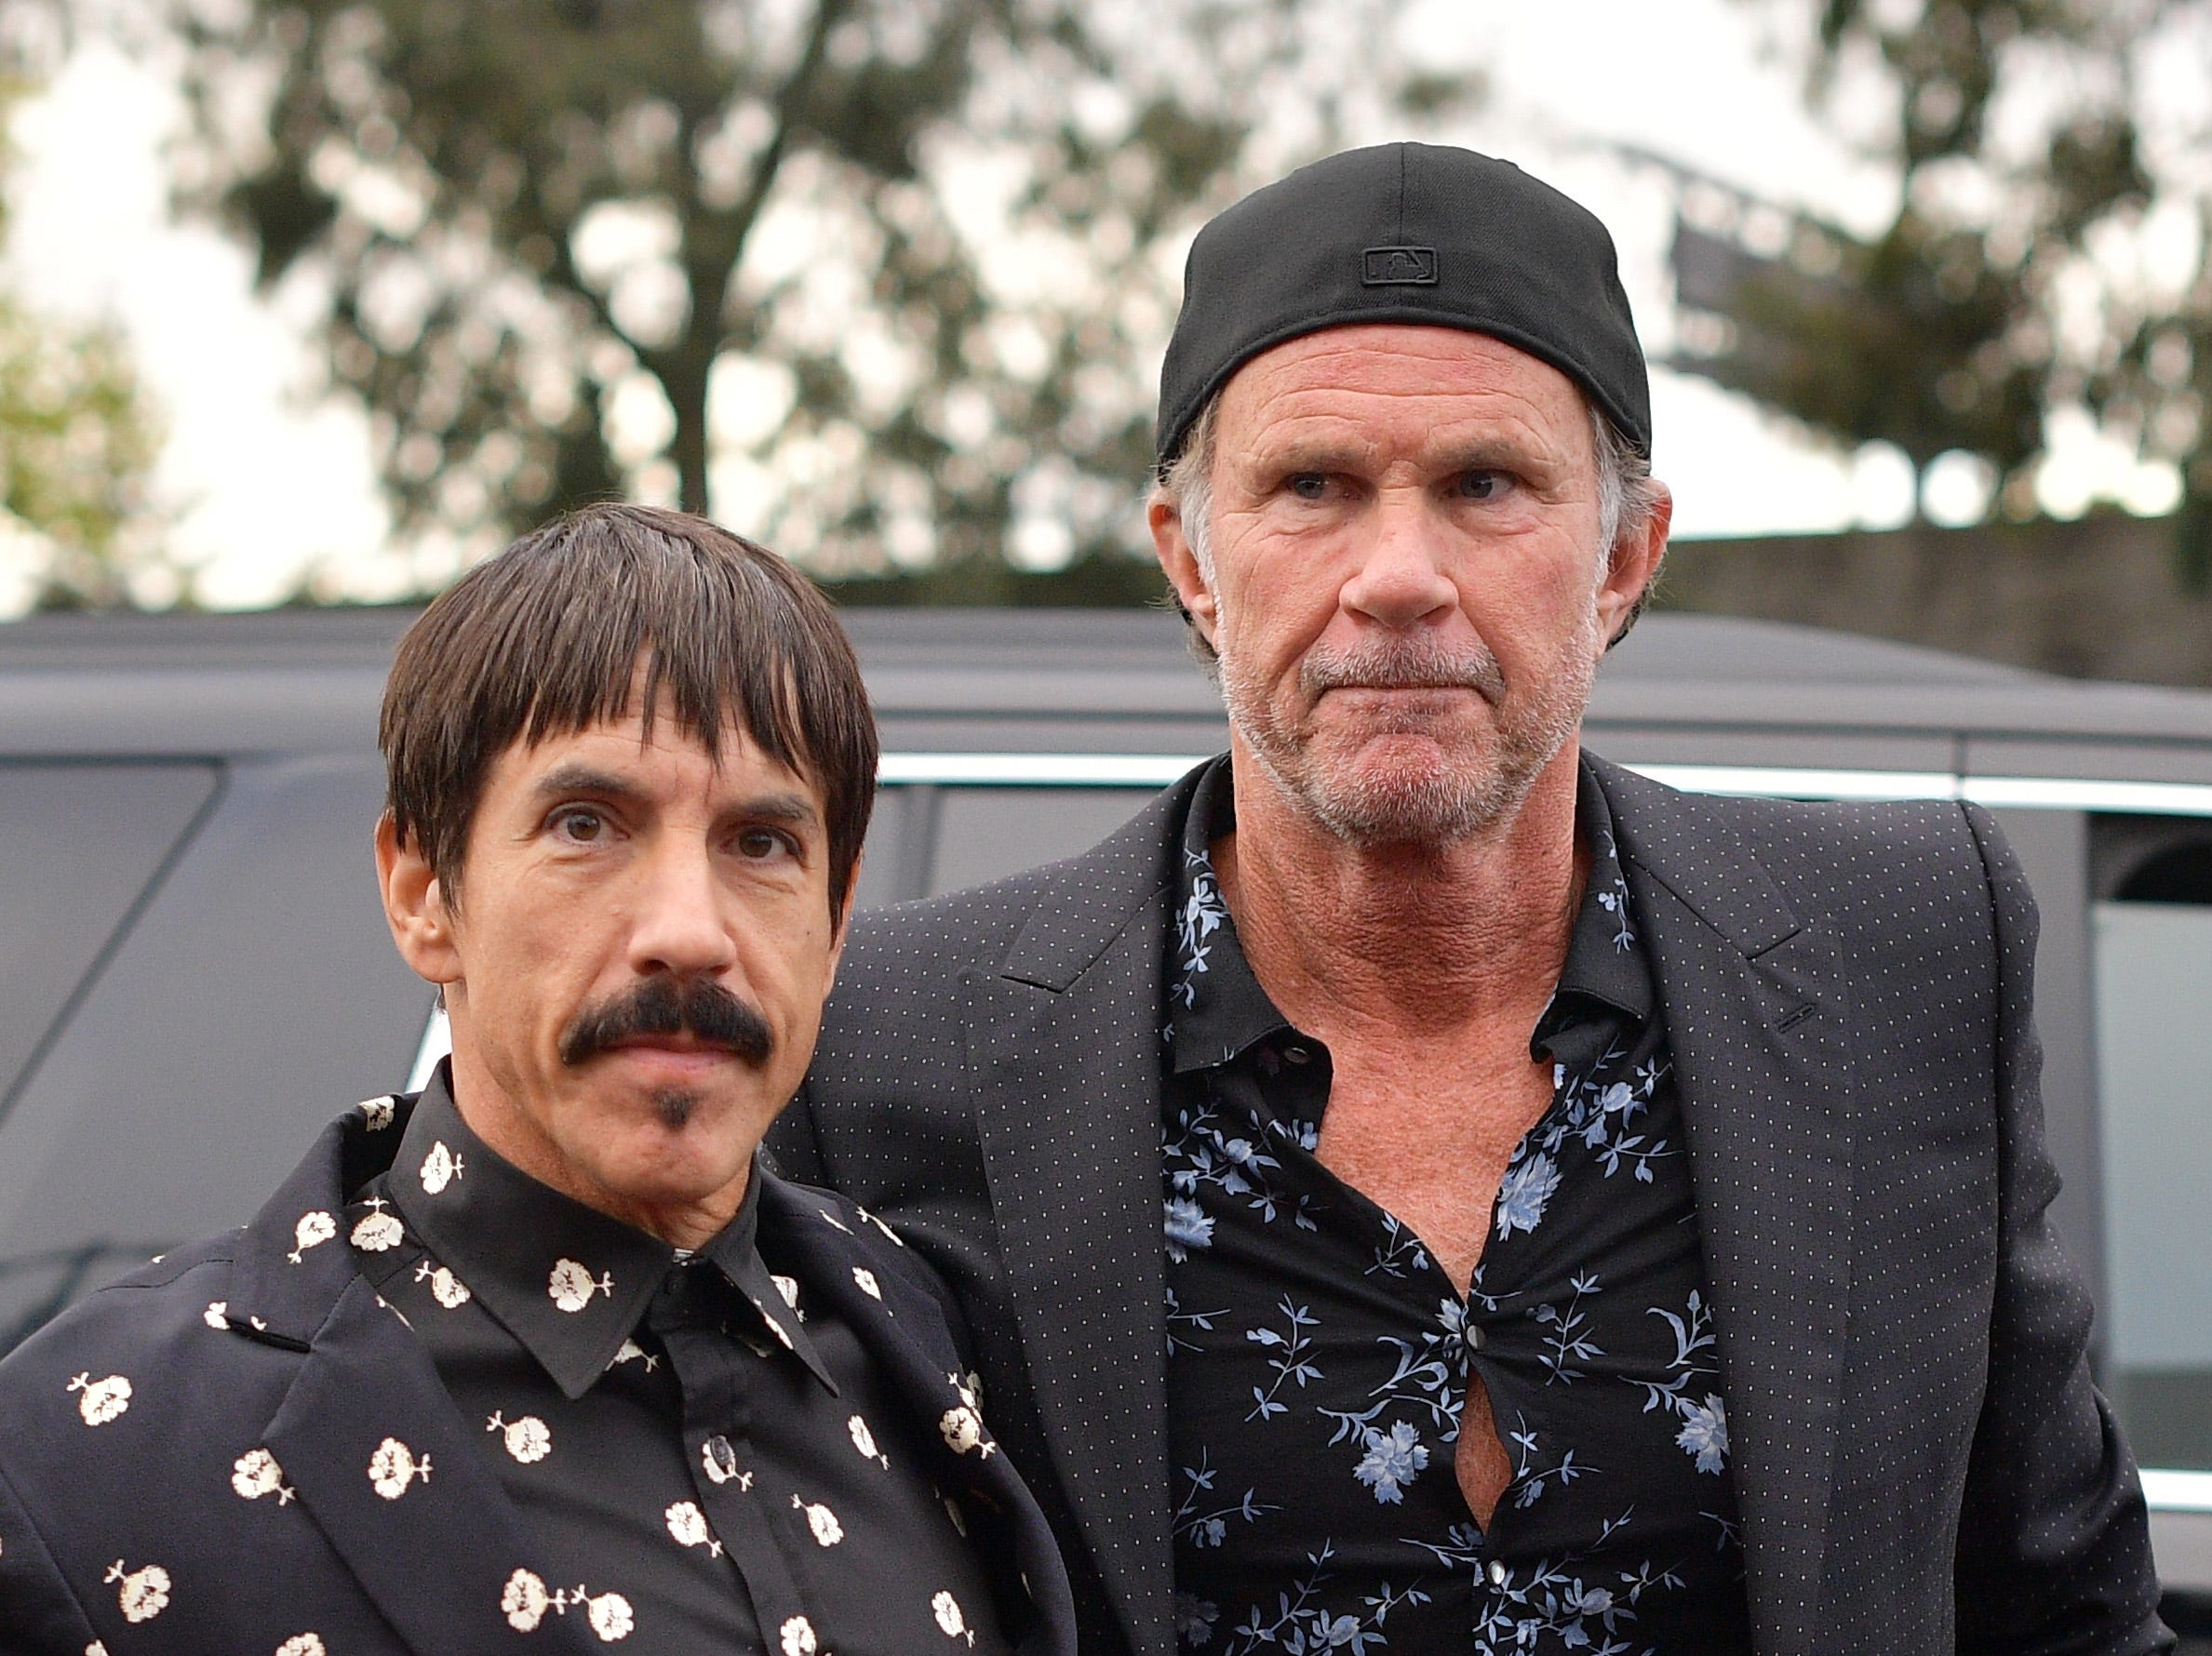 Anthony Kiedis (izq) y Chad Smith de Red Hot Chili Peppers asisten a la 61ª edición de los premios GRAMMY en el Staples Center el 10 de febrero de 2019 en Los Ángeles, California.